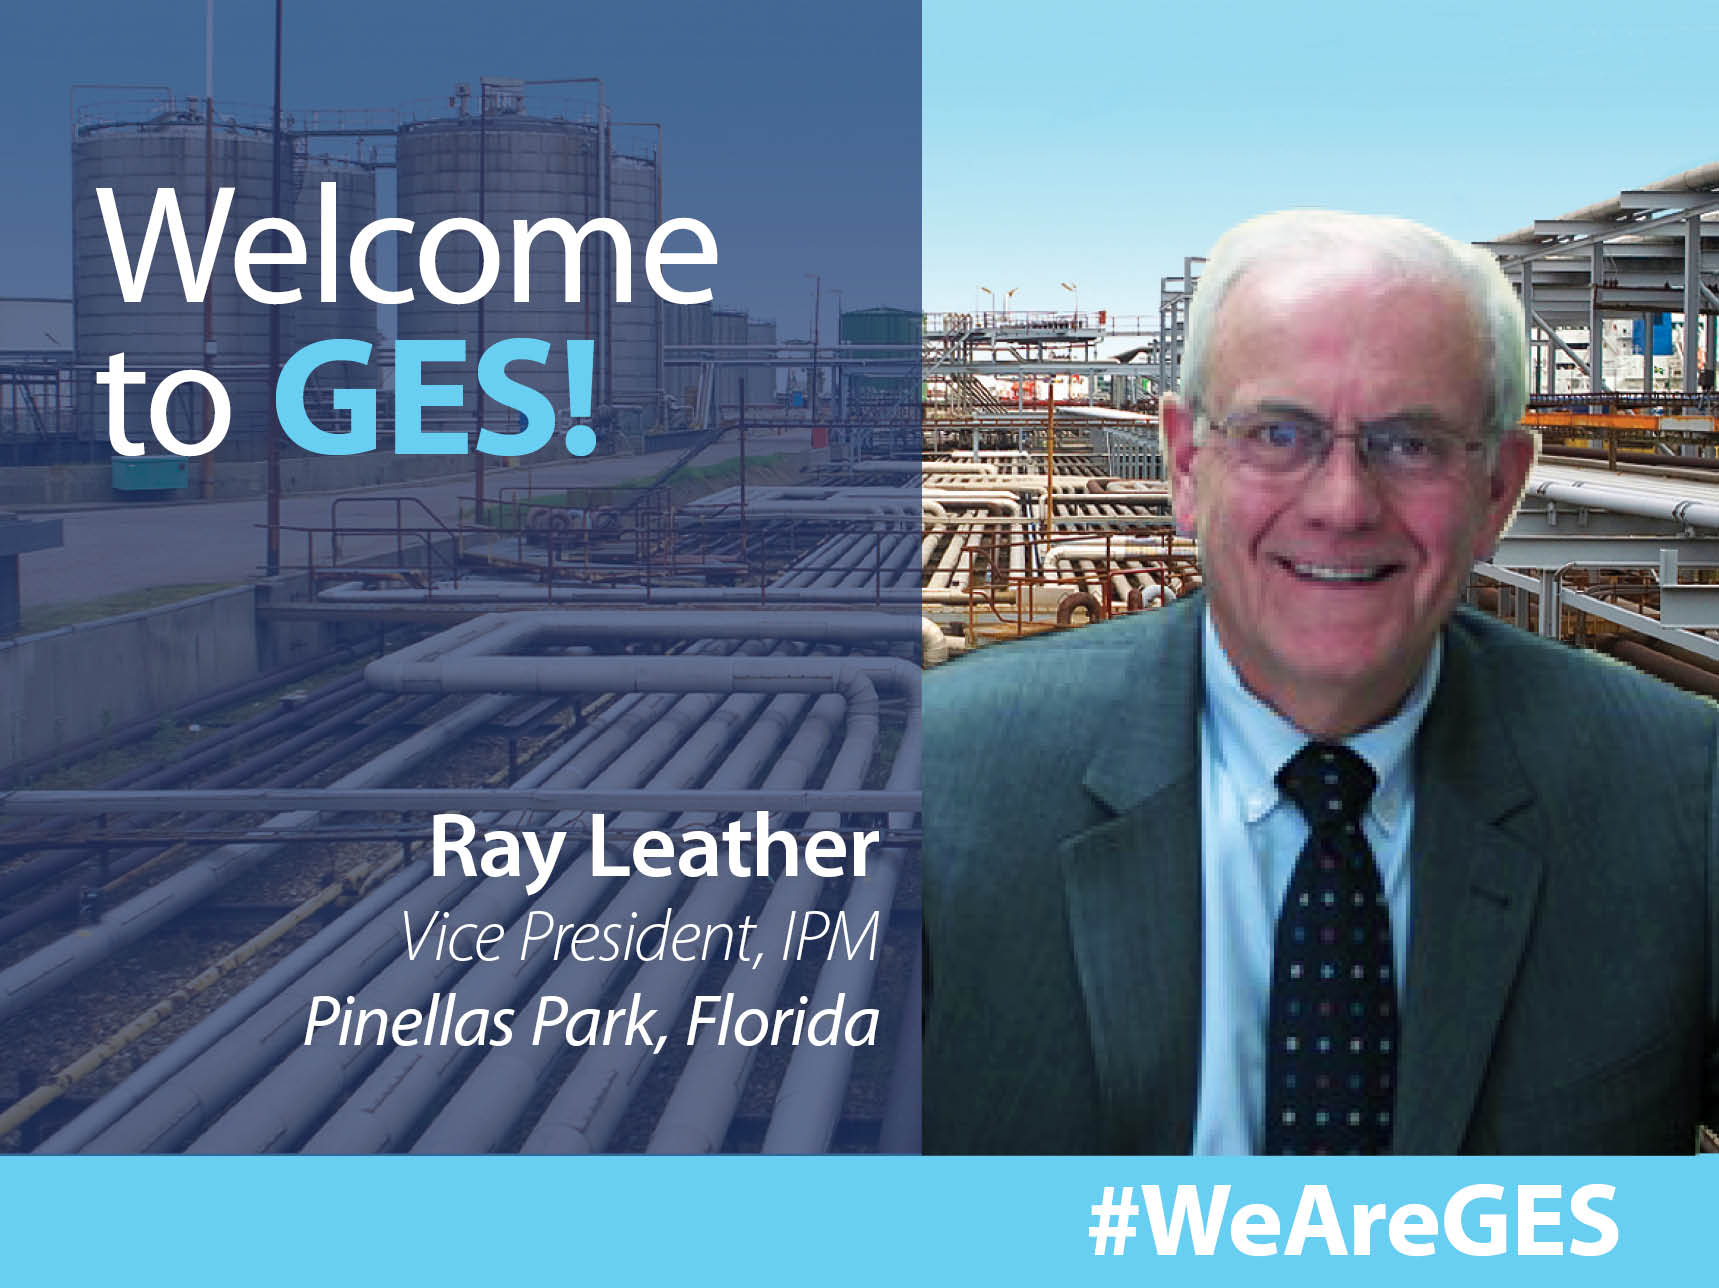 Ray Leather, Welcome